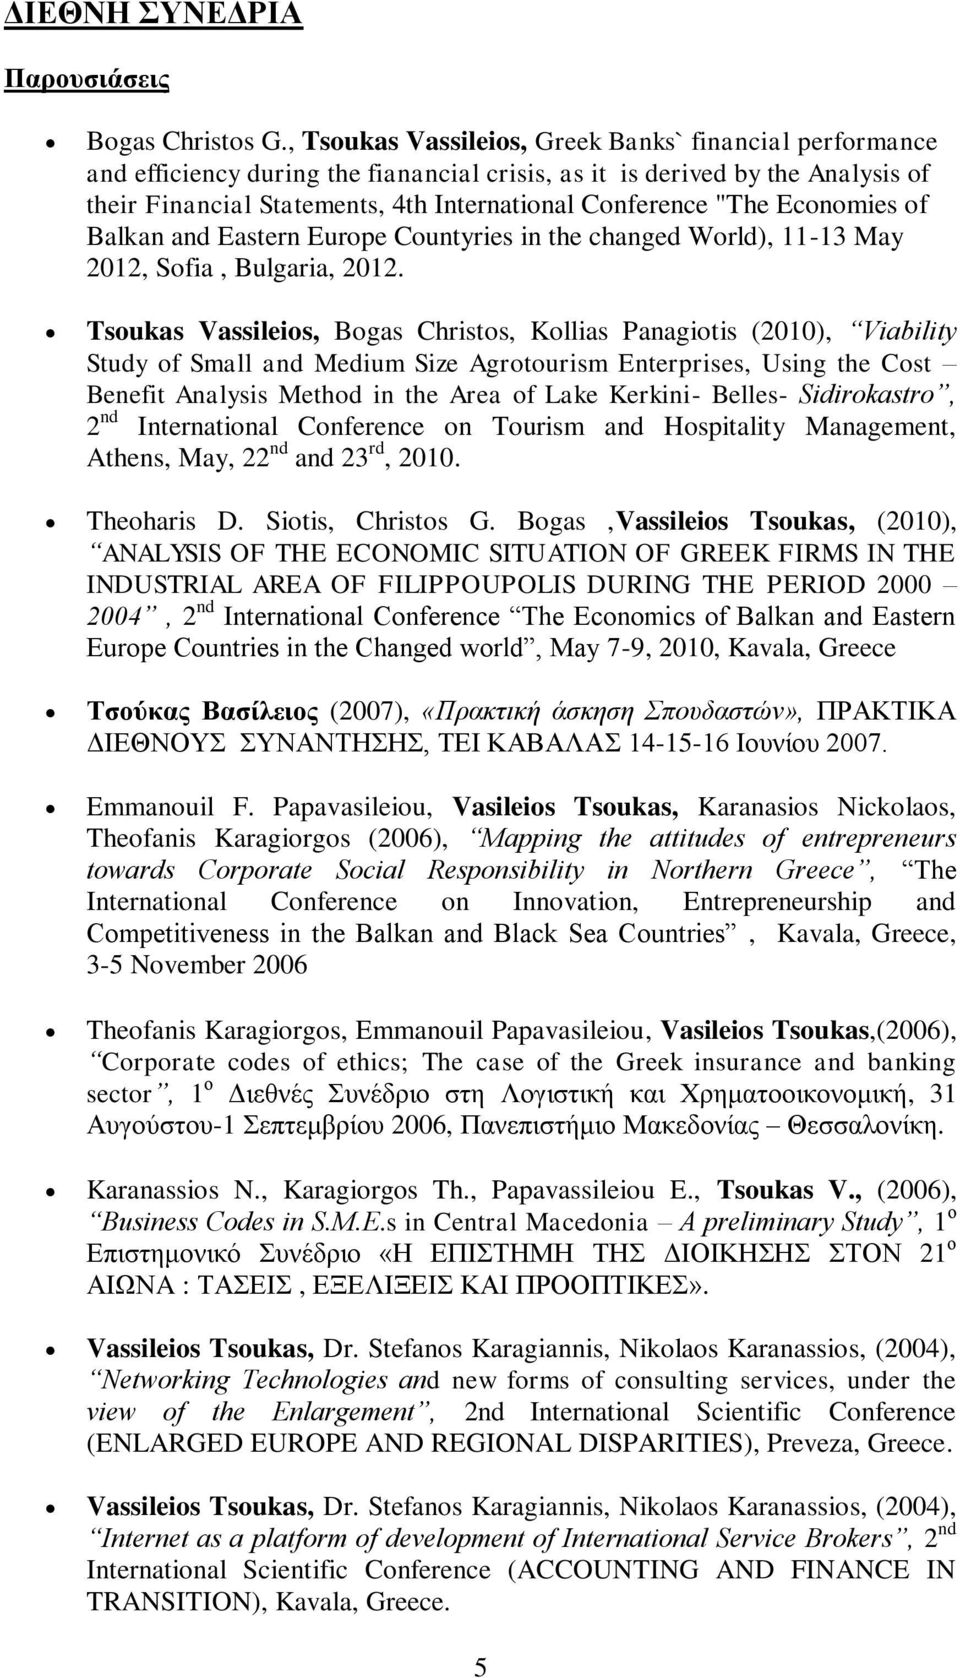 Economies of Balkan and Eastern Europe Countyries in the changed World), 11-13 May 2012, Sofia, Bulgaria, 2012.